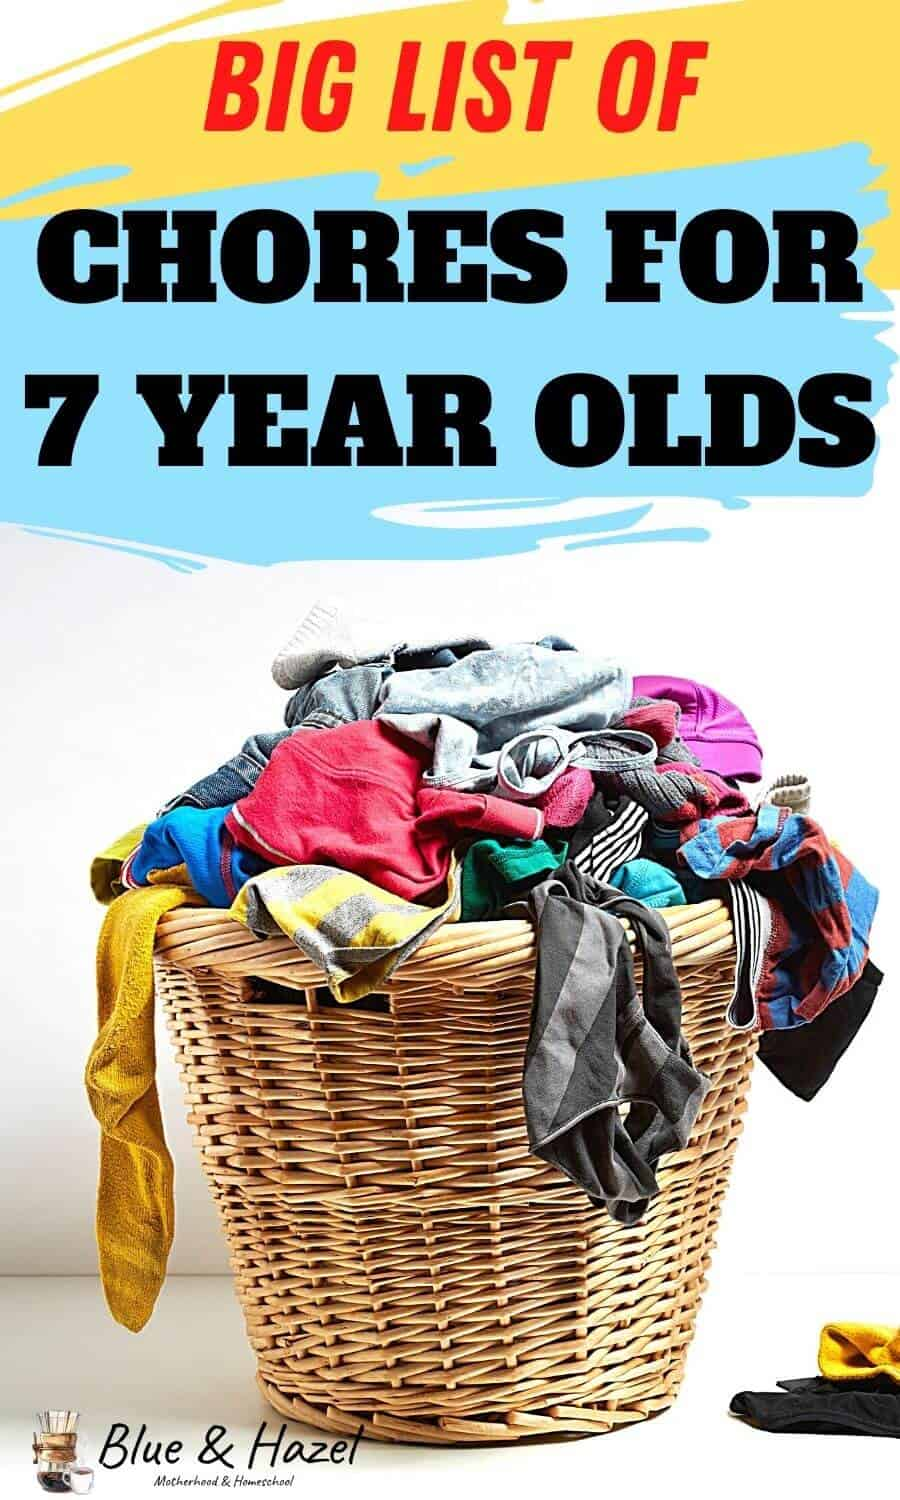 big list of chores for 7 year olds! Here's 17 chores 7 year olds can do to learn responsibility.